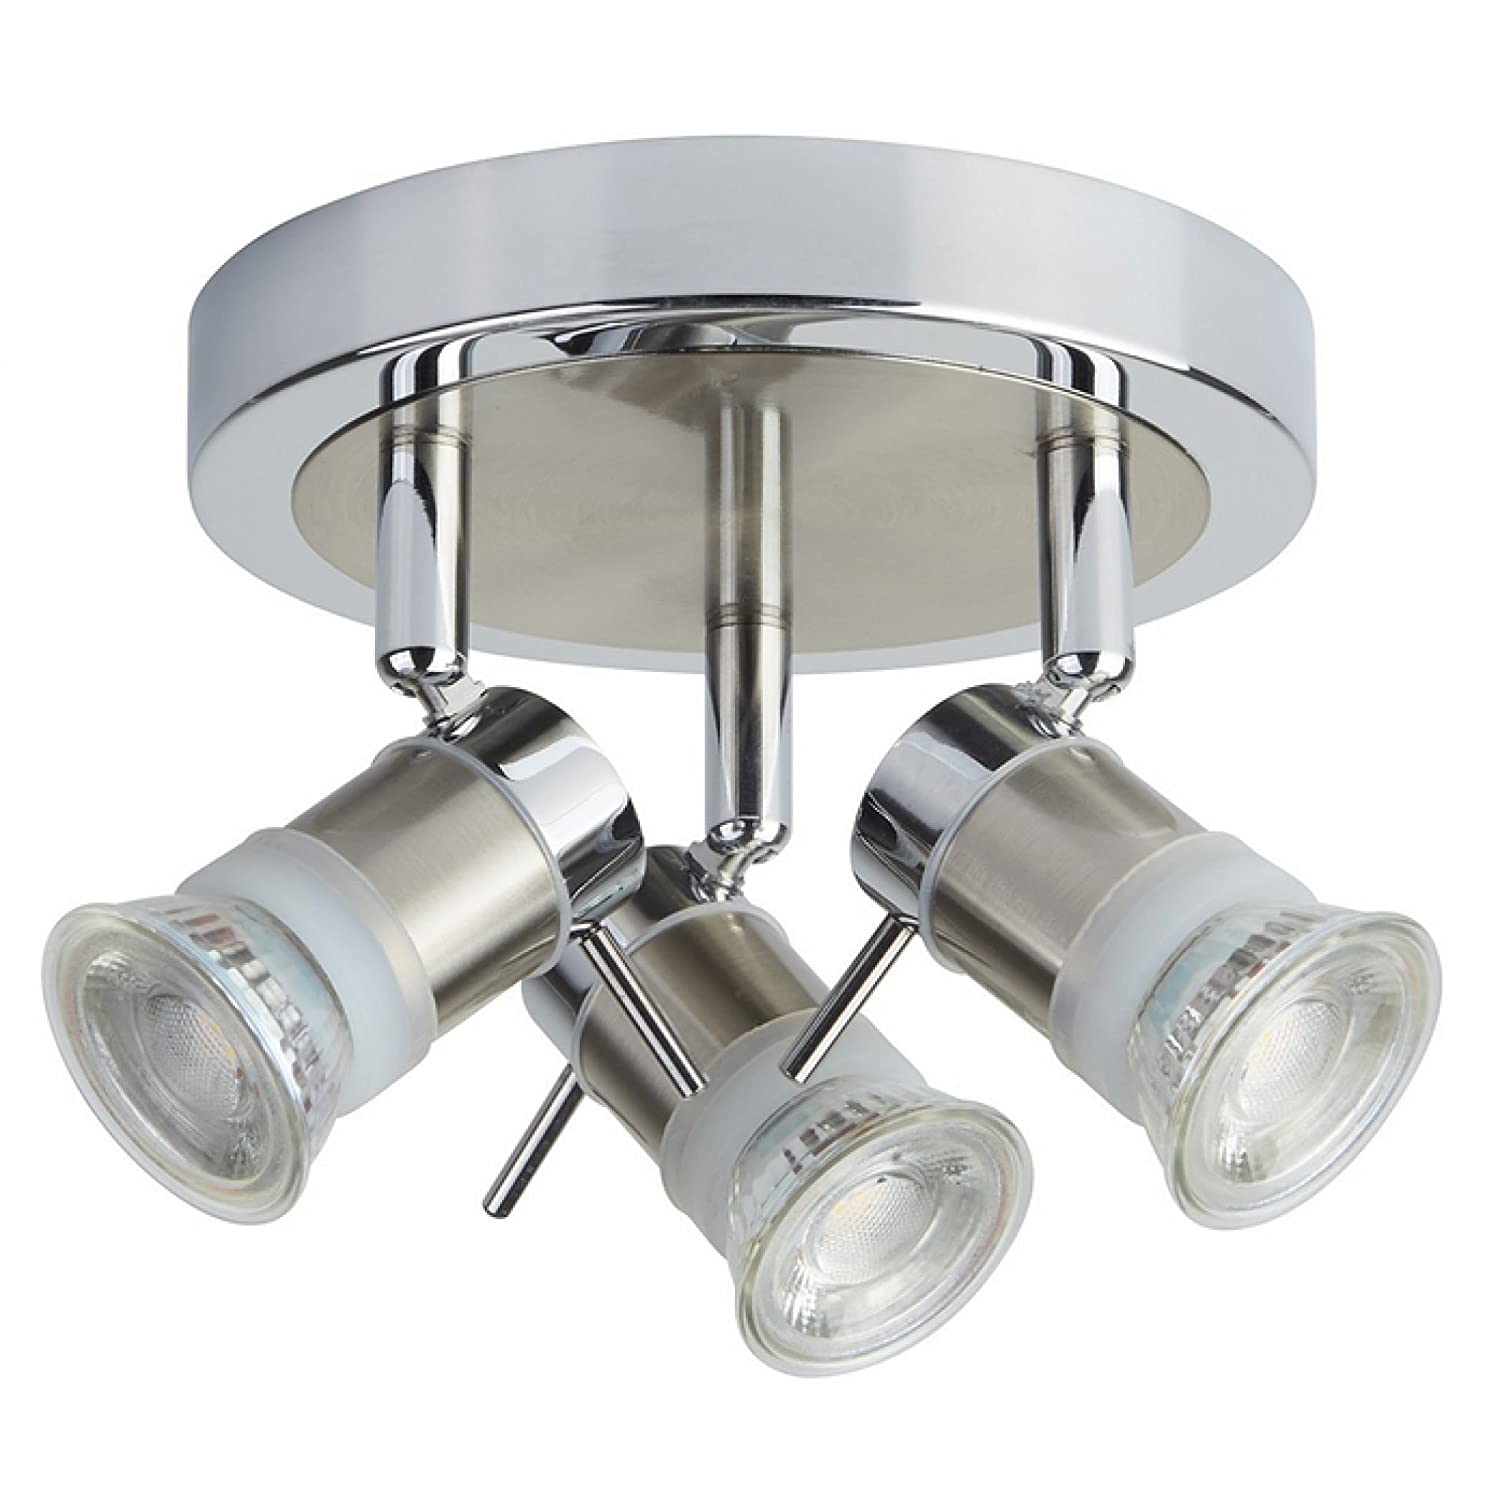 ARIES Chrome Finish Halogen Bathroom Ceiling Lights / Lighting with 3 Spotlights IP44